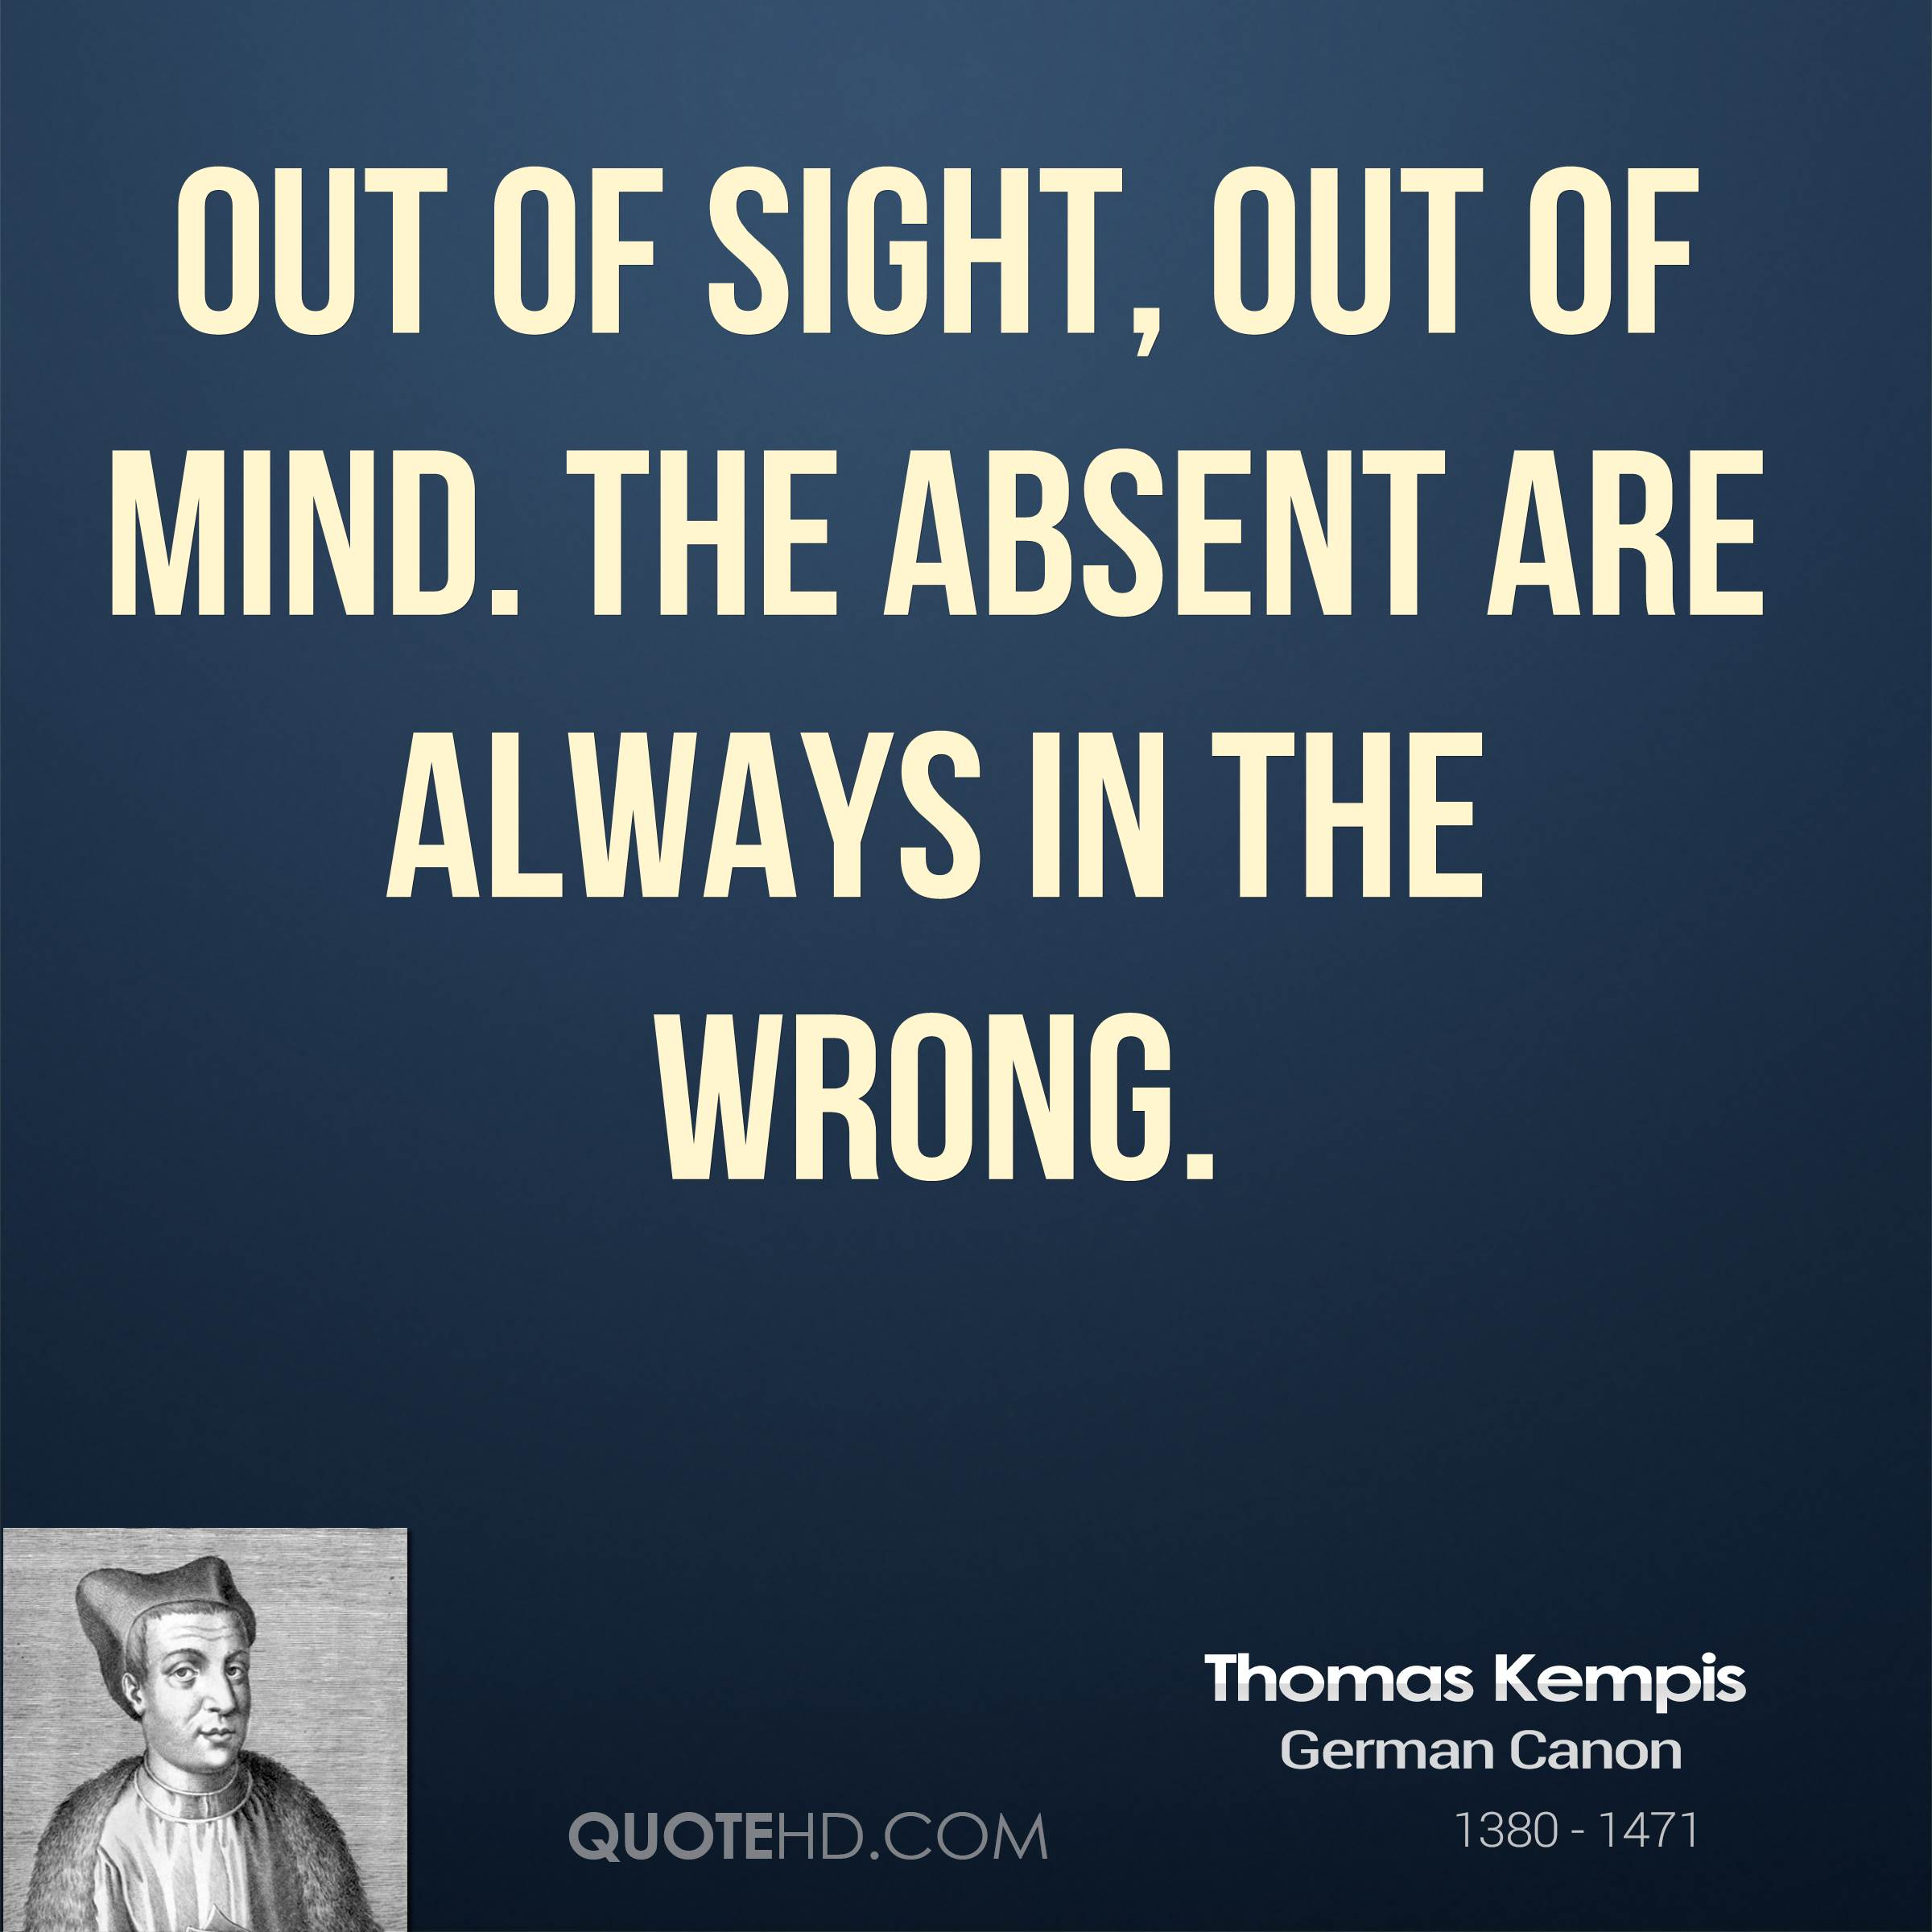 Out of sight, out of mind. The absent are always in the wrong.